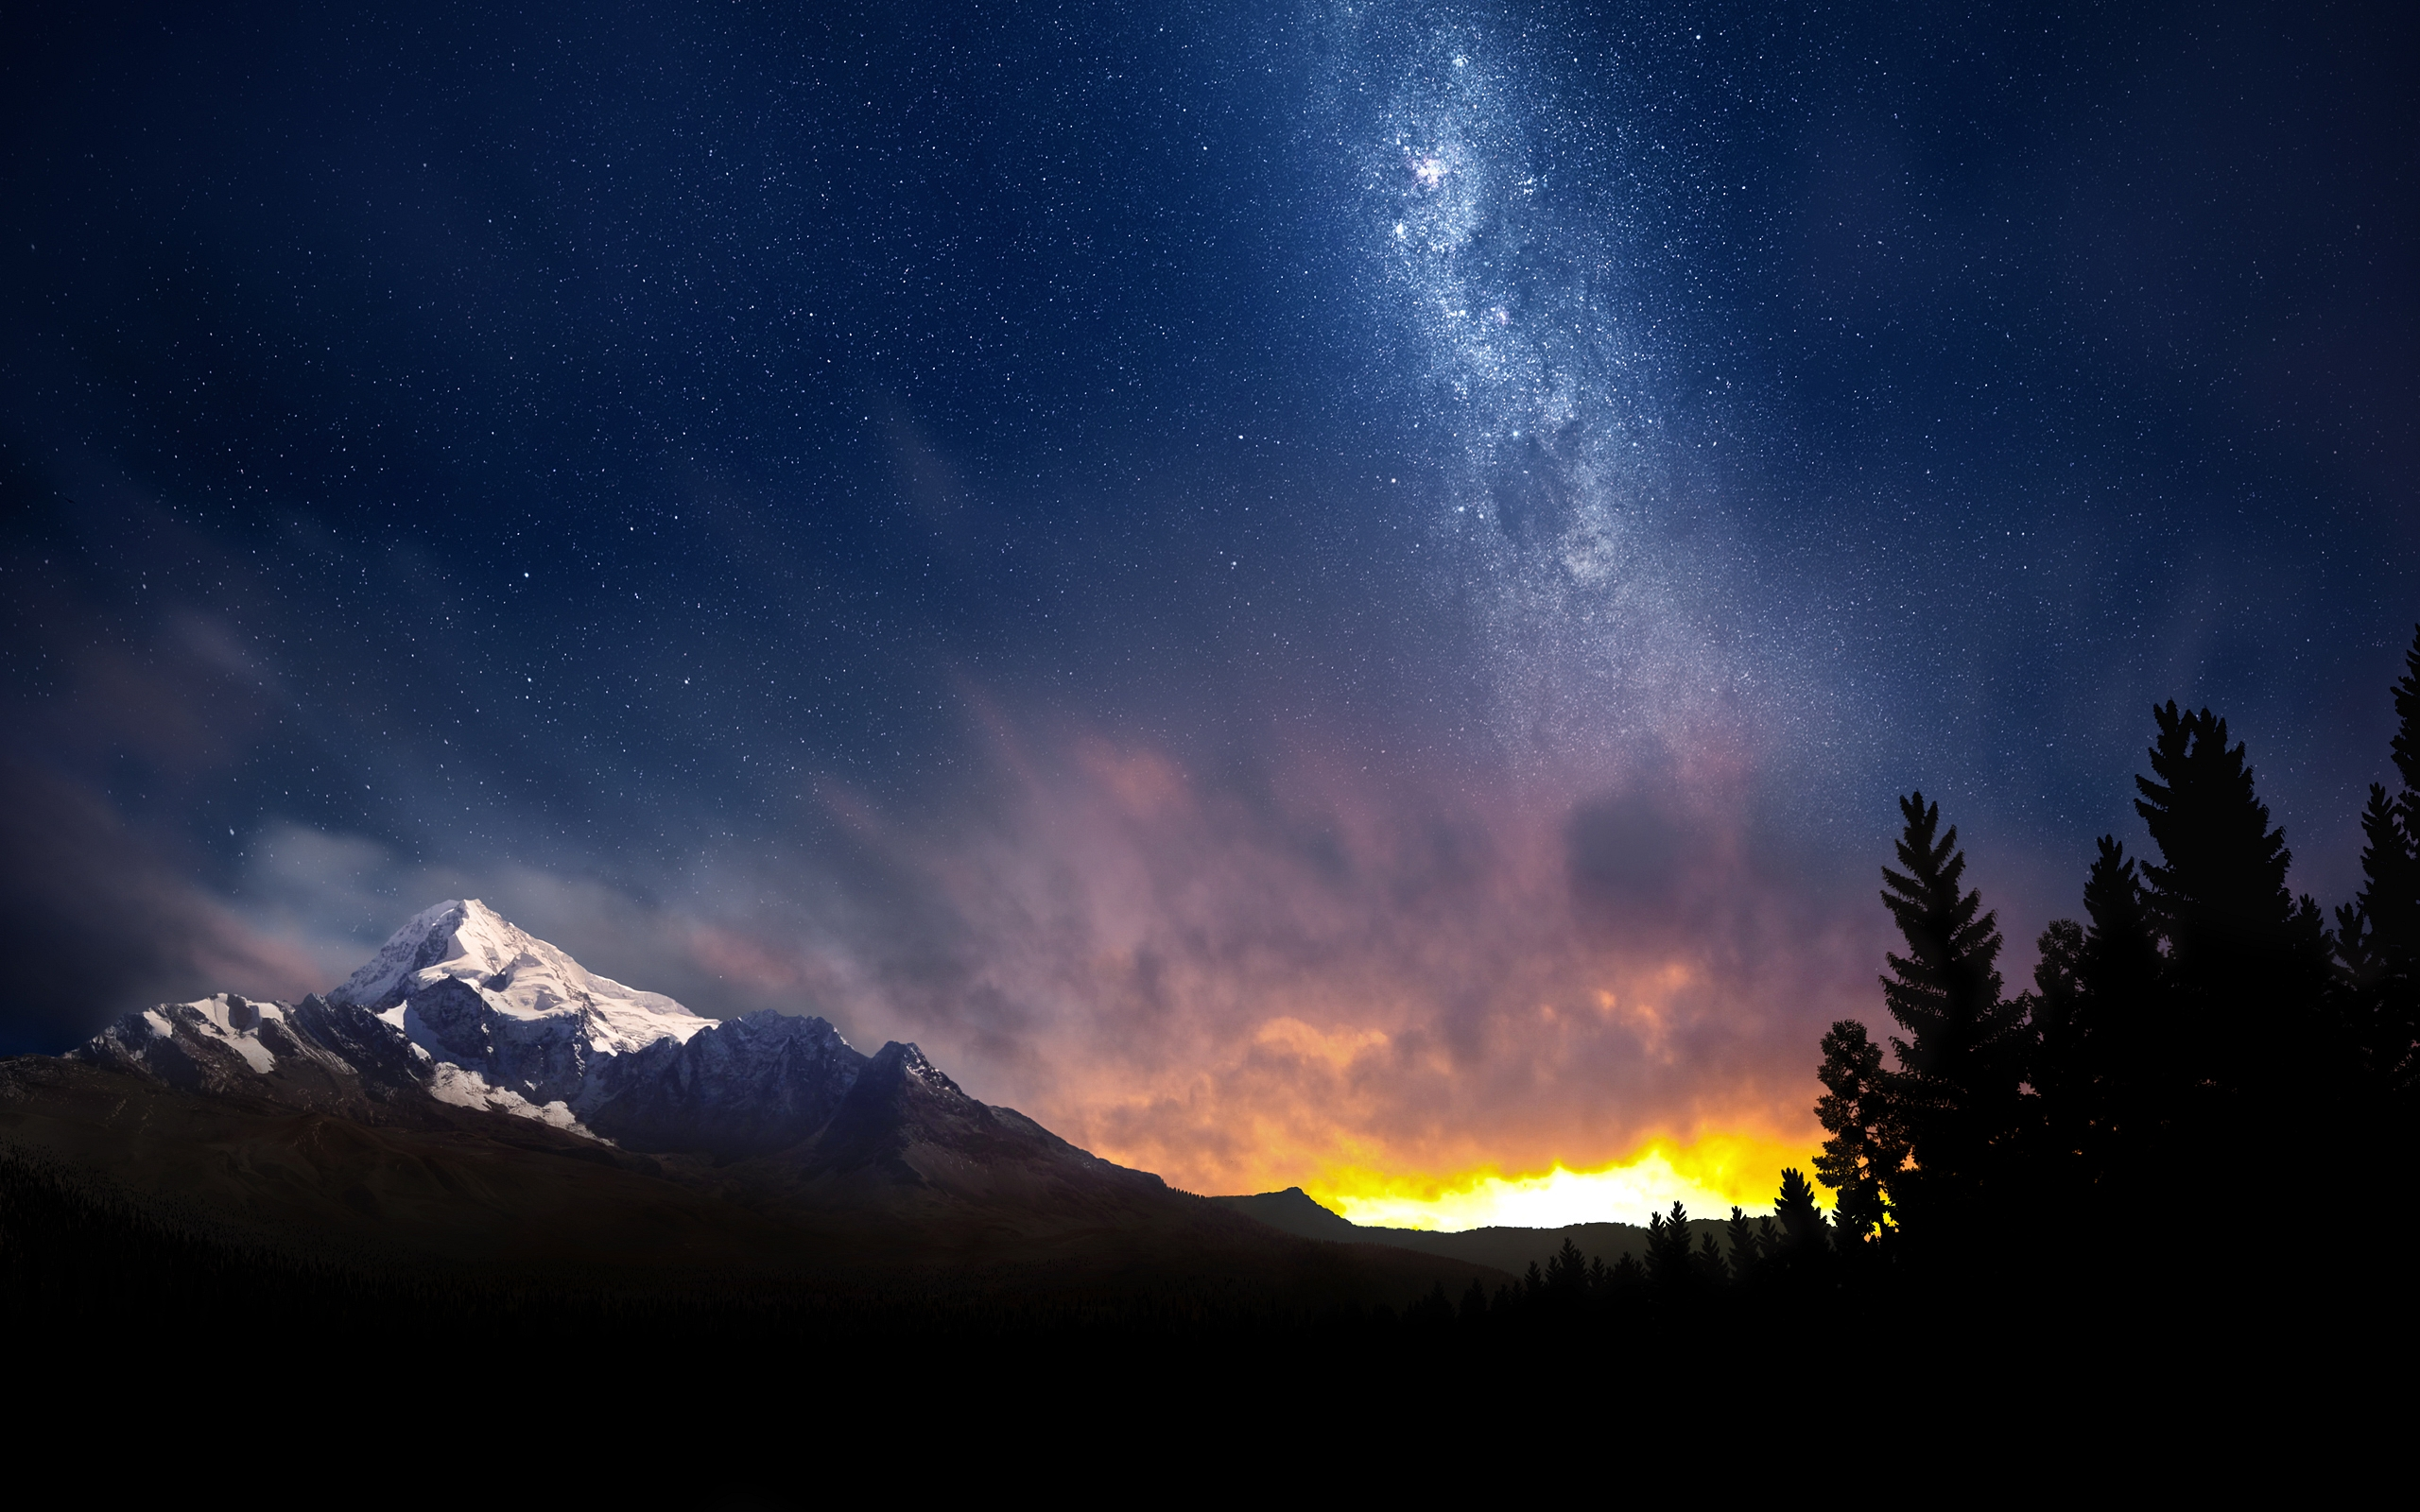 Night Sky Wallpaper Hd 2560x1600